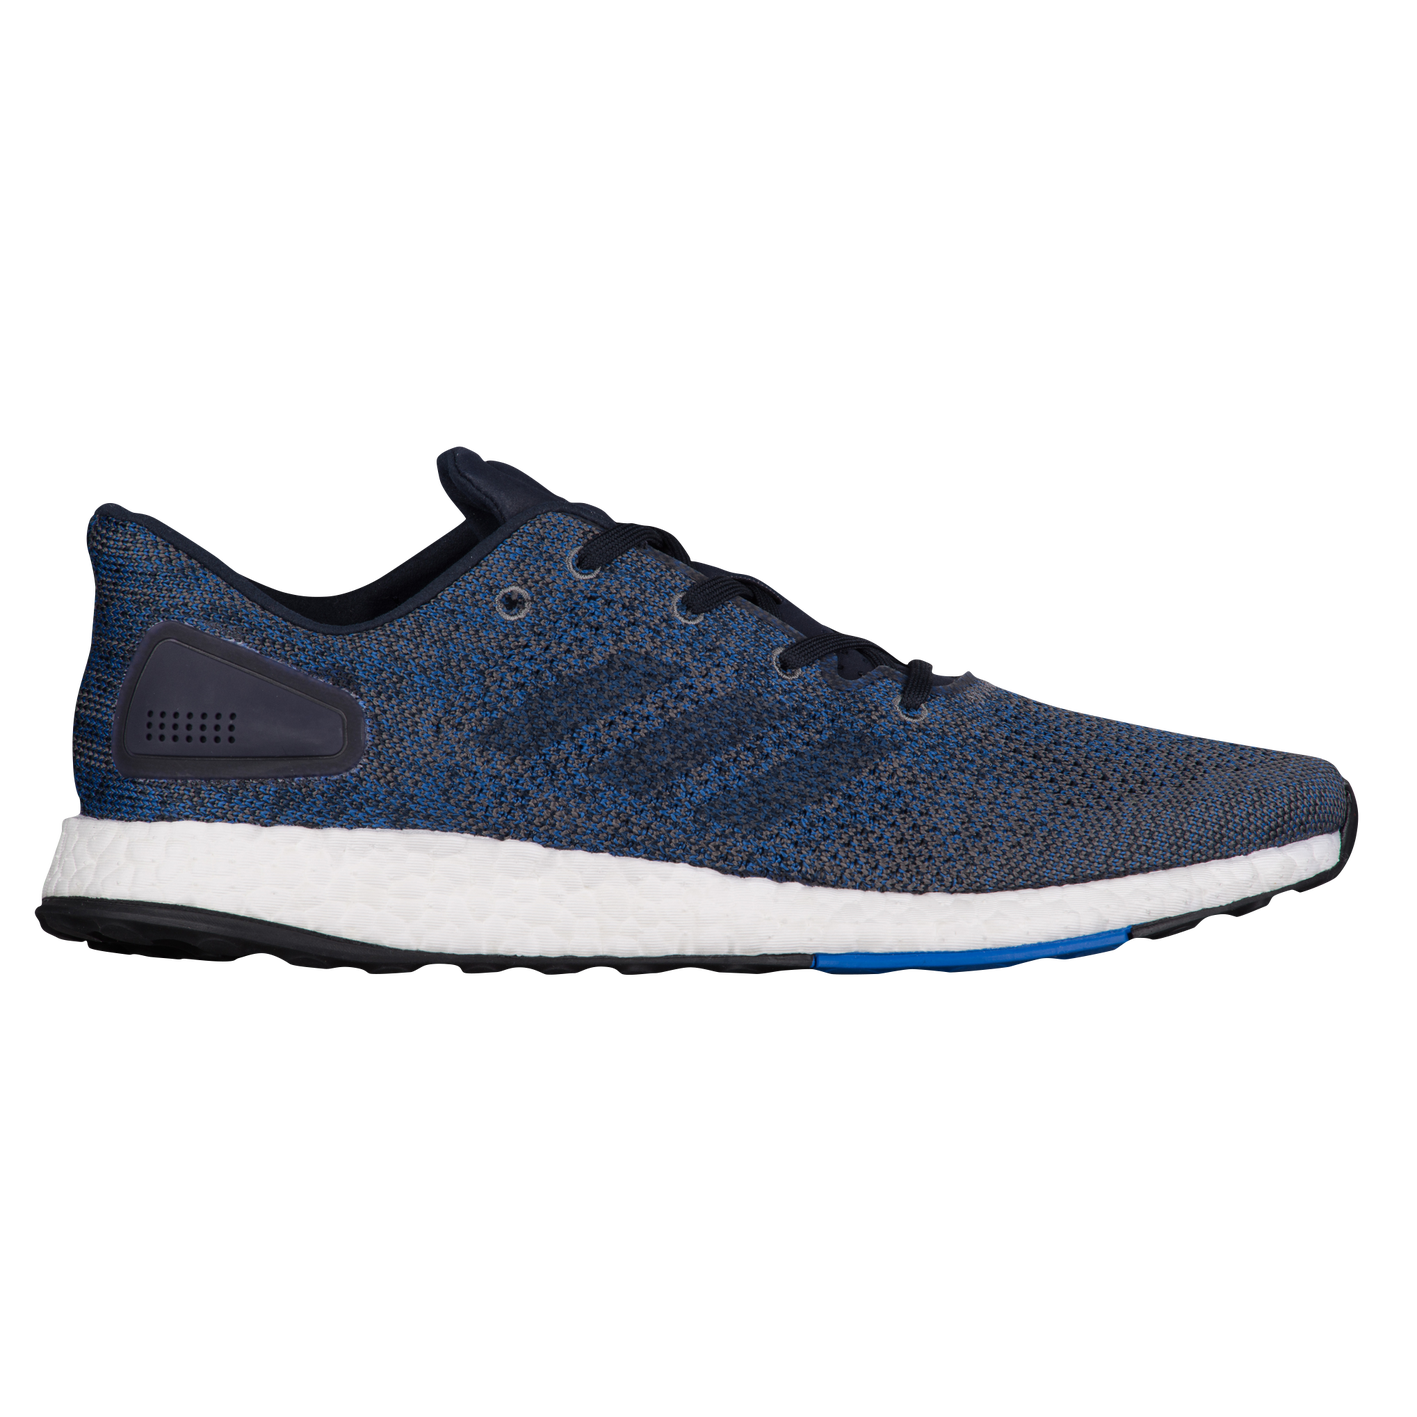 0bed4256f67 adidas PureBoost DPR - Men s - Running - Shoes - Legend Ink Blue